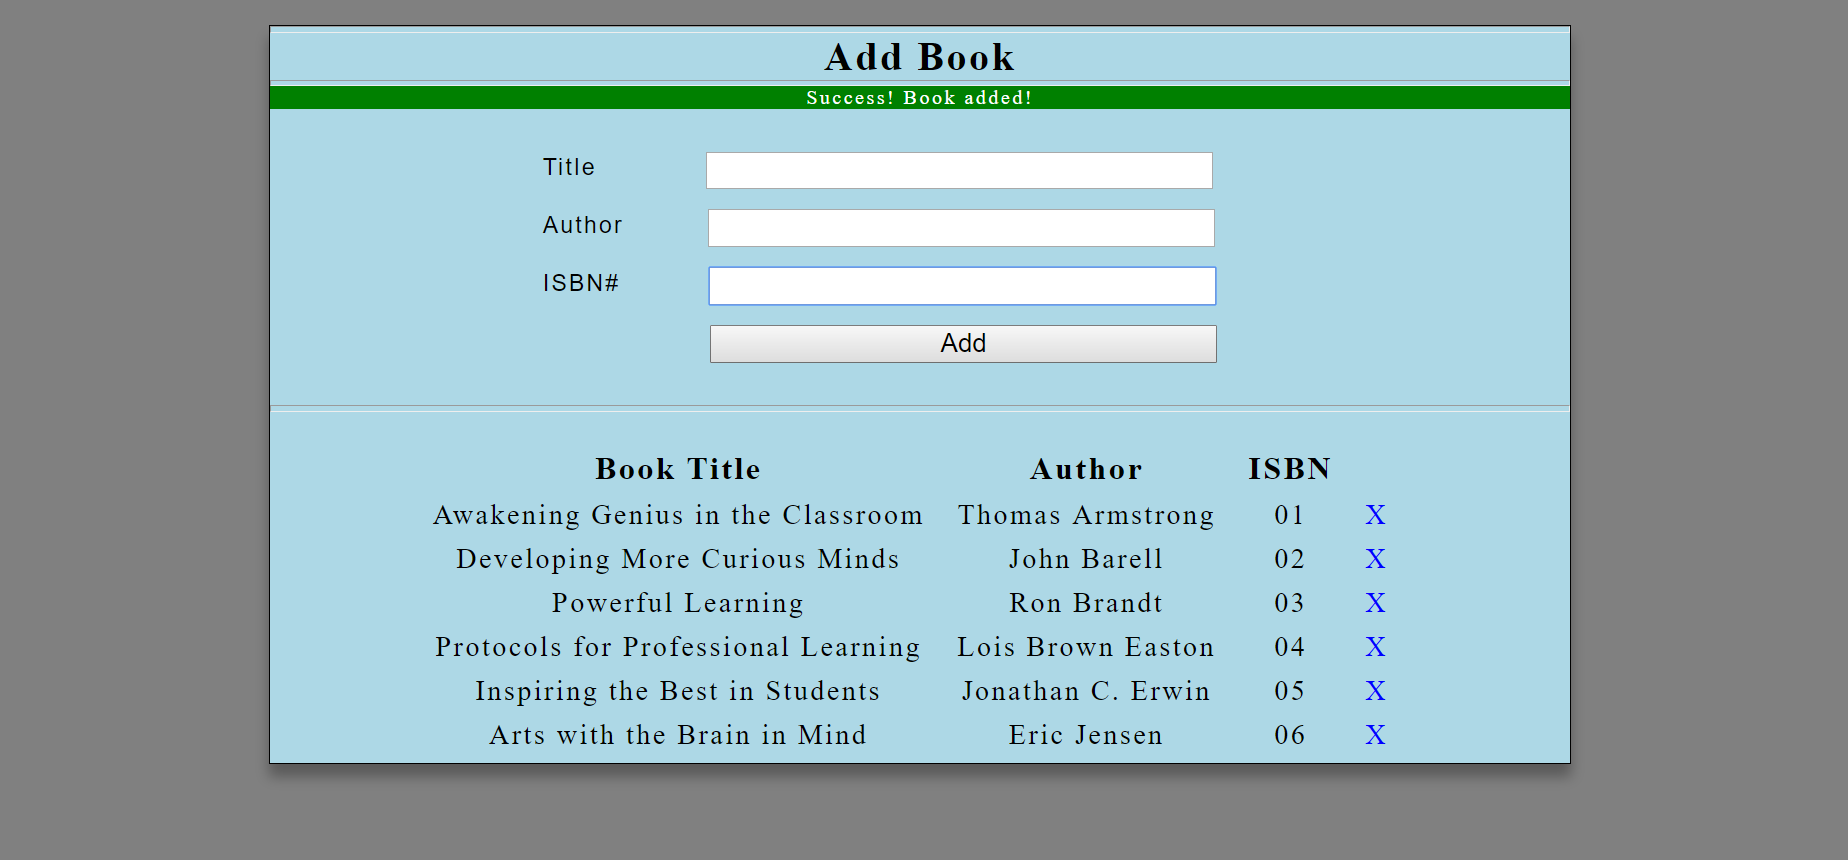 image of book listing system